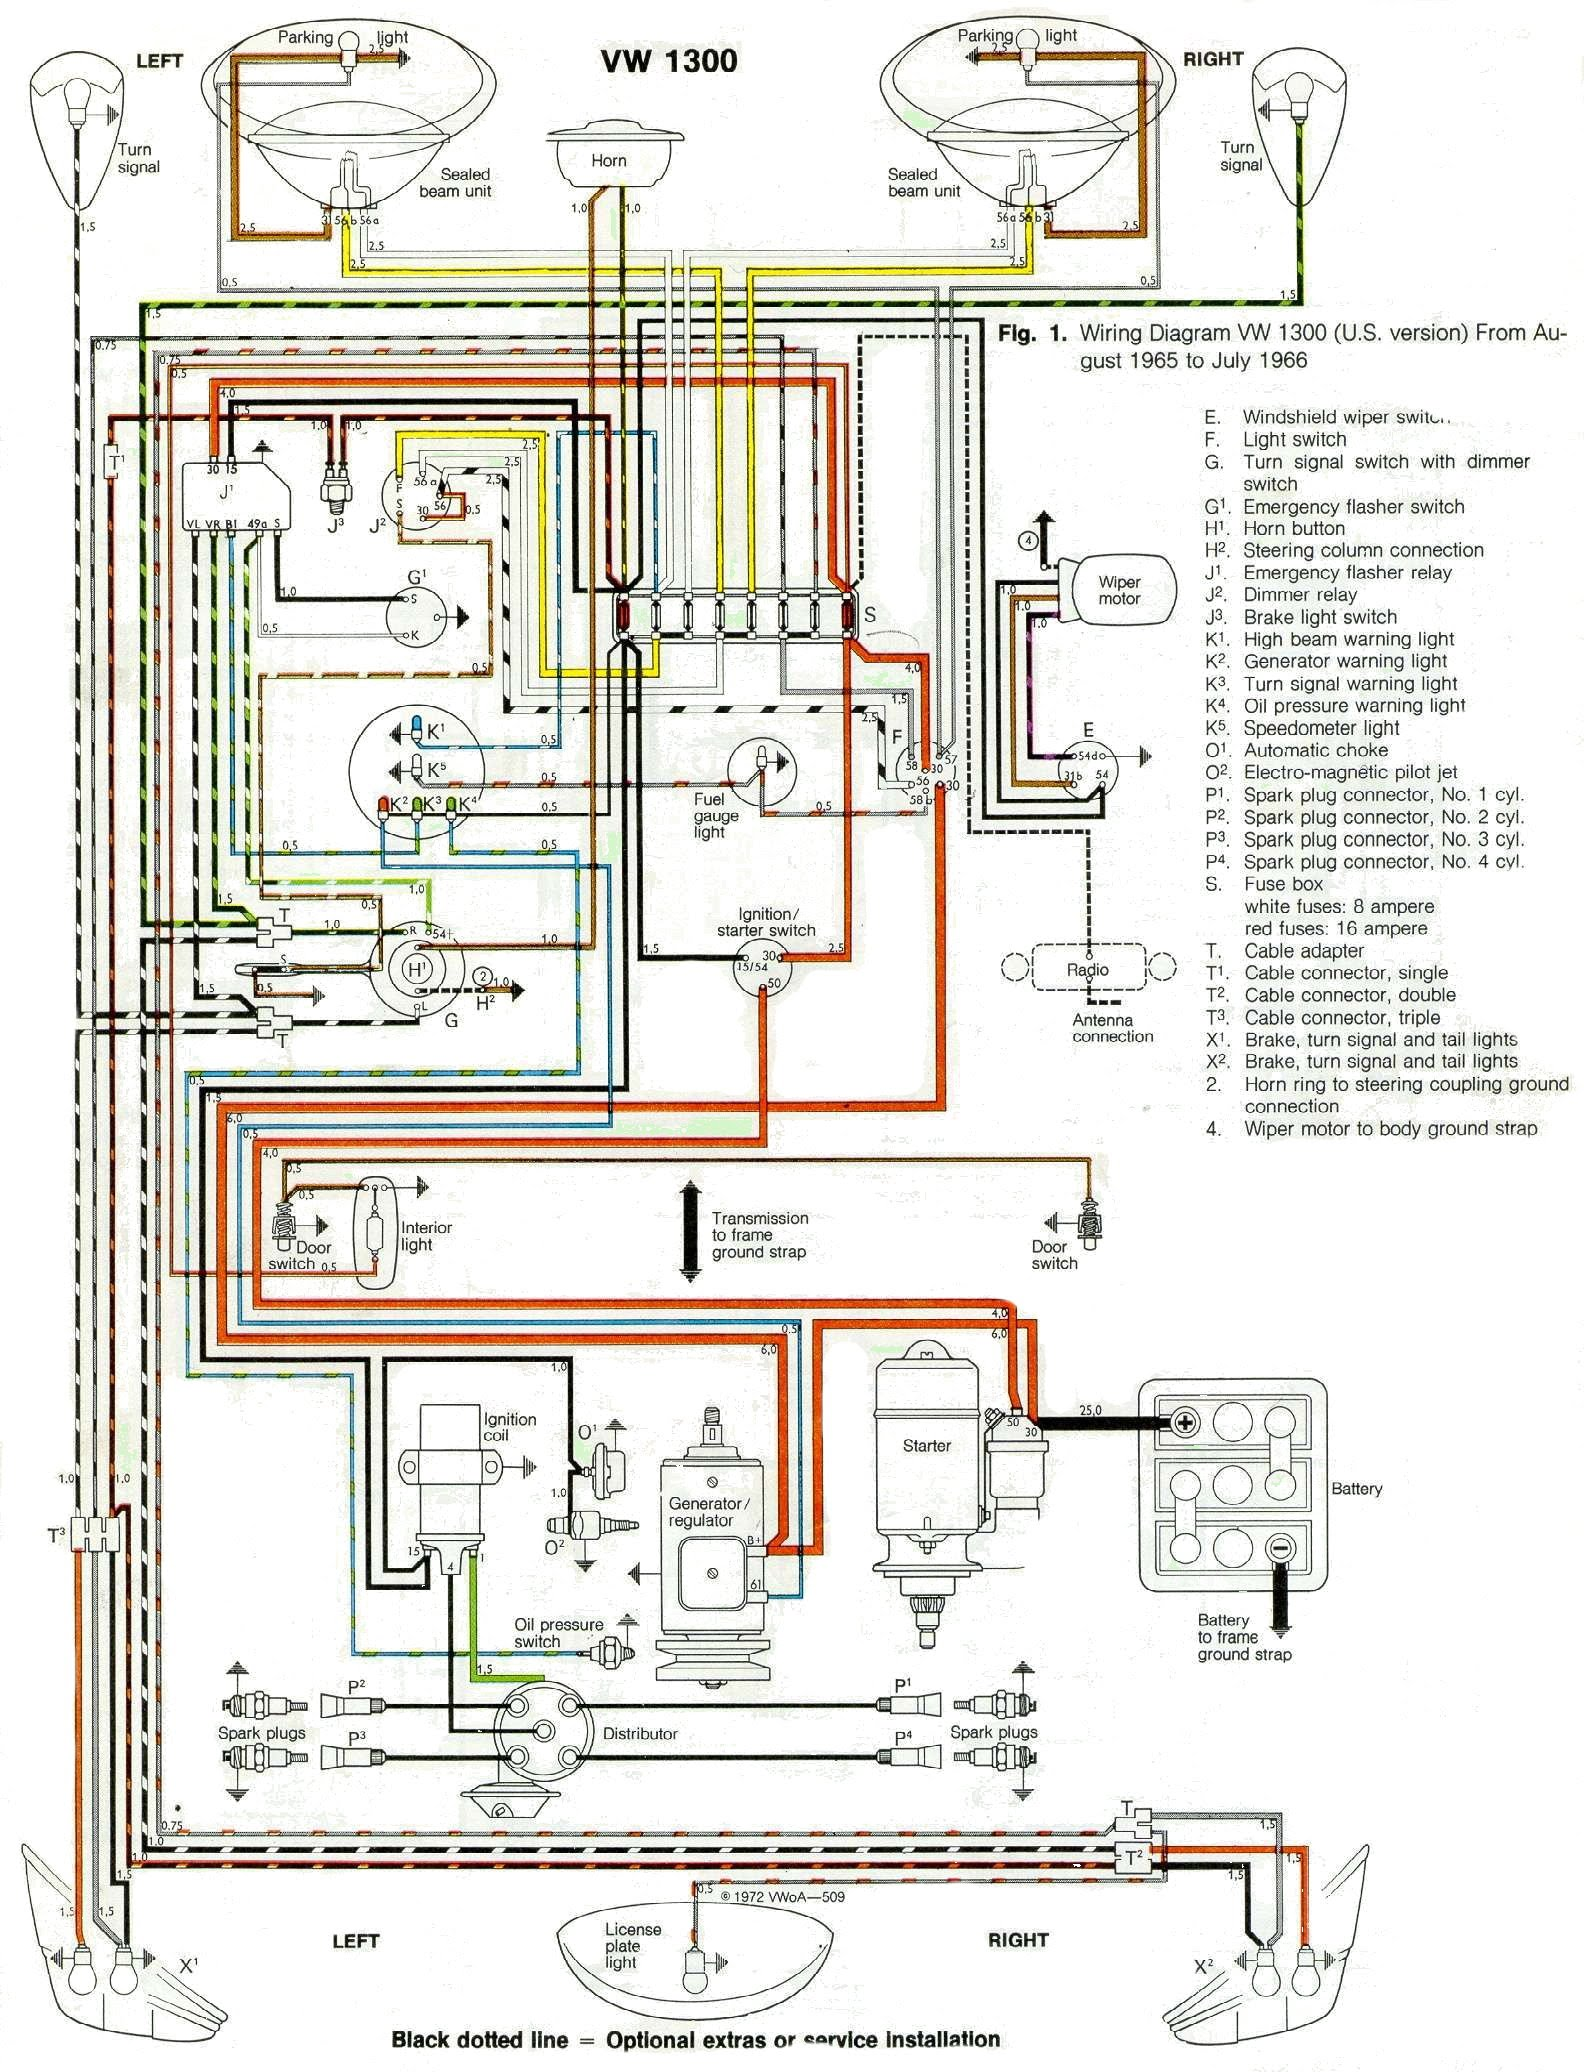 1965 volkswagen 1300 city car wiring diagram diagrams 19191168 vw golf wiring diagram electrical wiring vw citi golf wiring diagram at pacquiaovsvargaslive.co